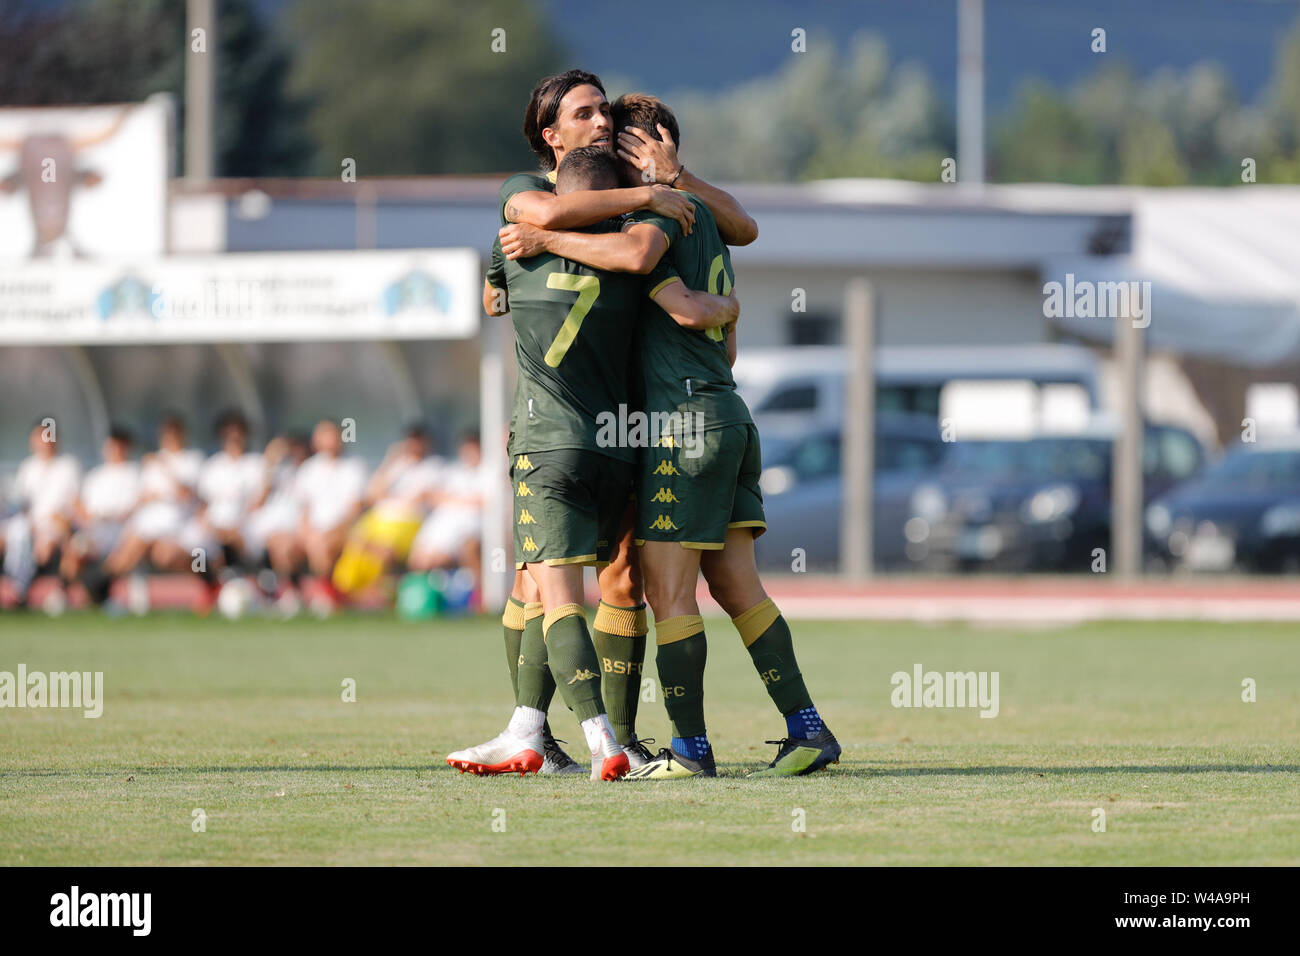 Darfo Boario, Italia. 21st July, 2019. Foto Stefano Nicoli/LaPresse21 luglio 2019 Darfo Boario (Bs), Italia sport calcio Amichevole Brescia Darfo Pre Campionato di calcio Serie A 2019/2020 - Nella foto: Esultanza Donnarumma Torregrossa e Spalek Photo Stefano Nicoli/LaPresse July 20, 2019 Darfo Boario (Bs), Italy sport soccer Friendly match Brescia Darfo League A TIM 2019/2020 - In the pic: Donnarumma Torregossa e Spalek Credit: LaPresse/Alamy Live News - Stock Image